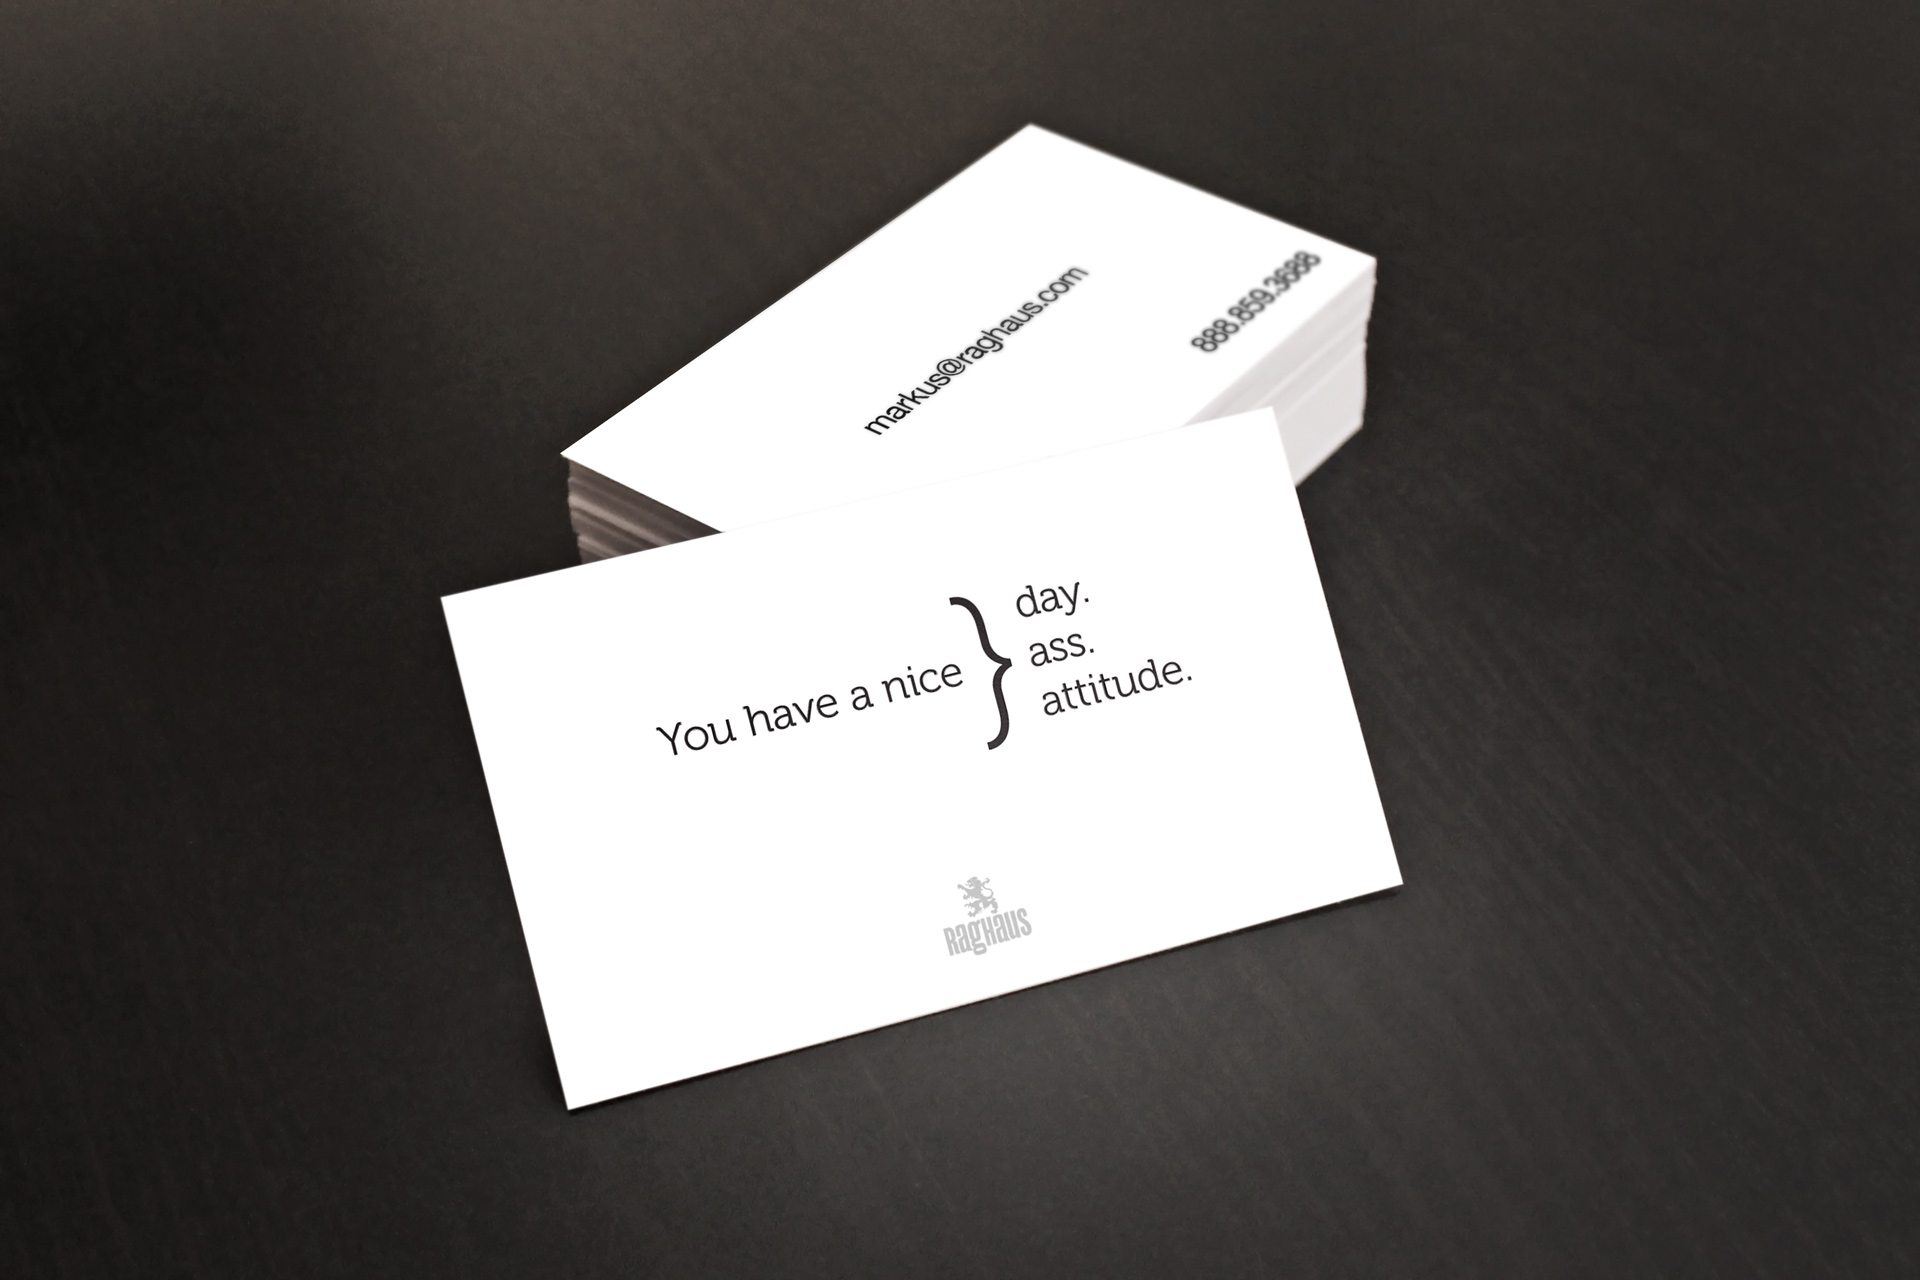 Personalized You have a nice ass business card · Customized You ...